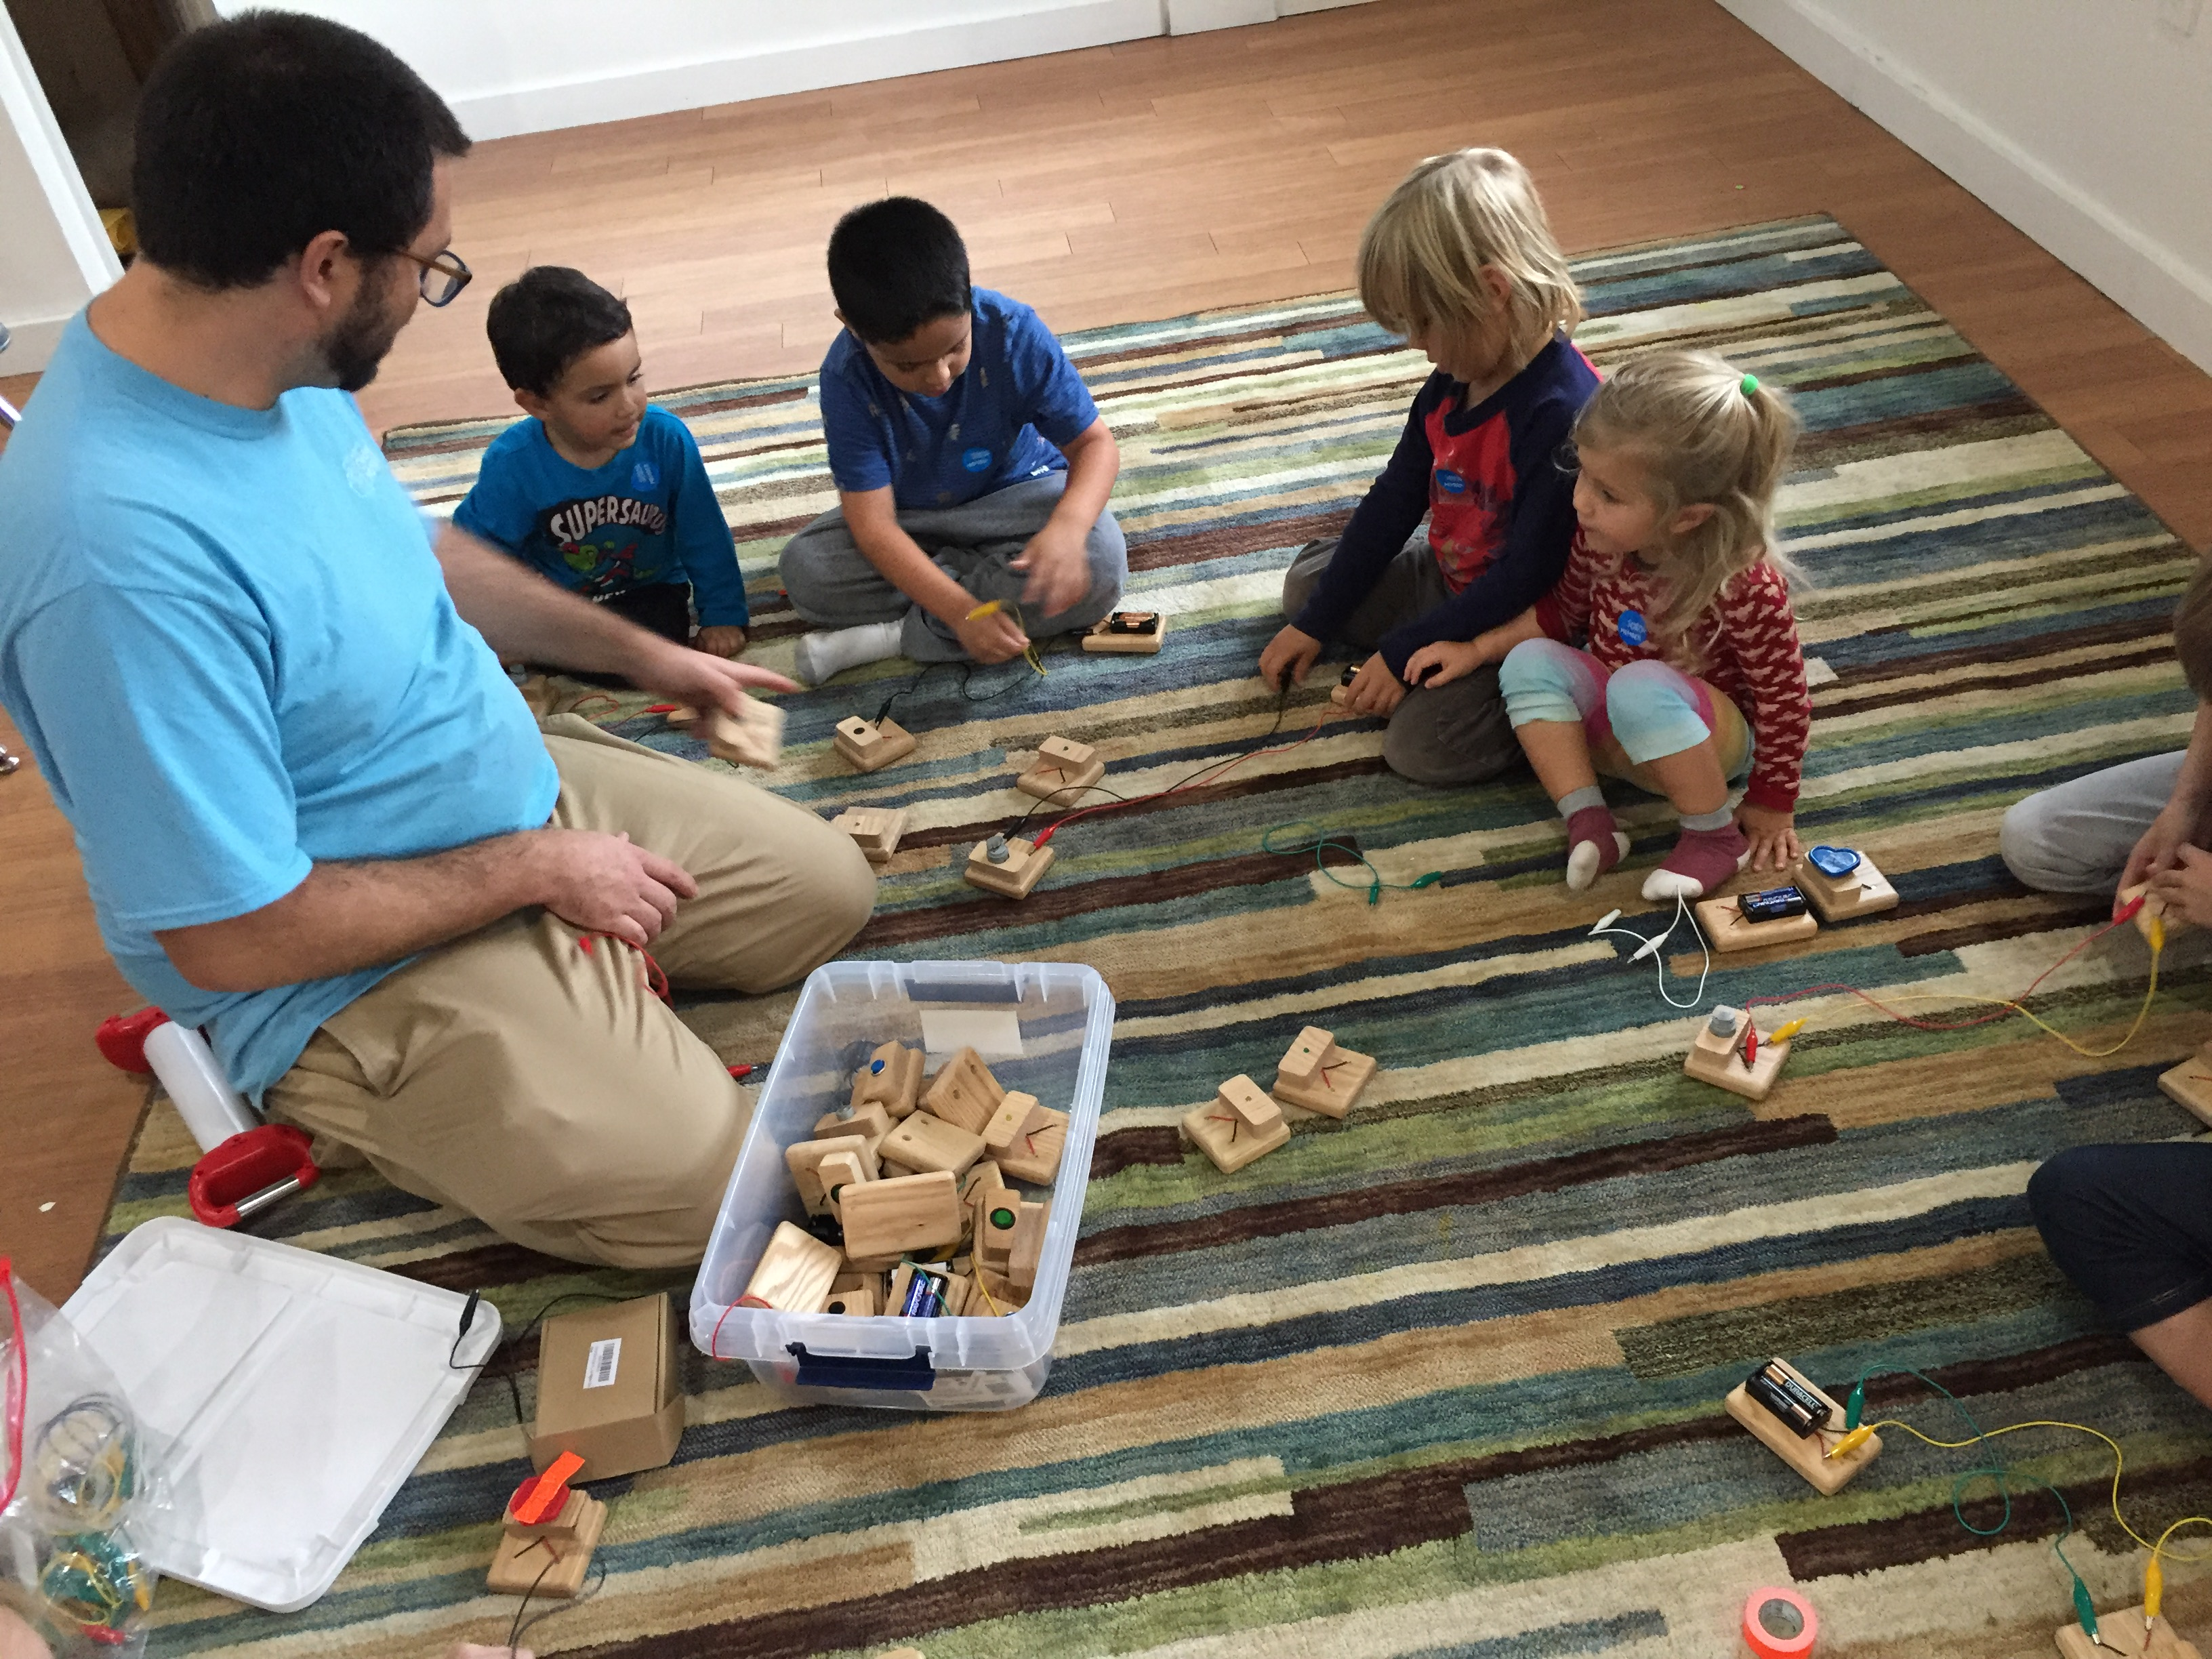 Children with educator exploring electric circuits while sitting on rug